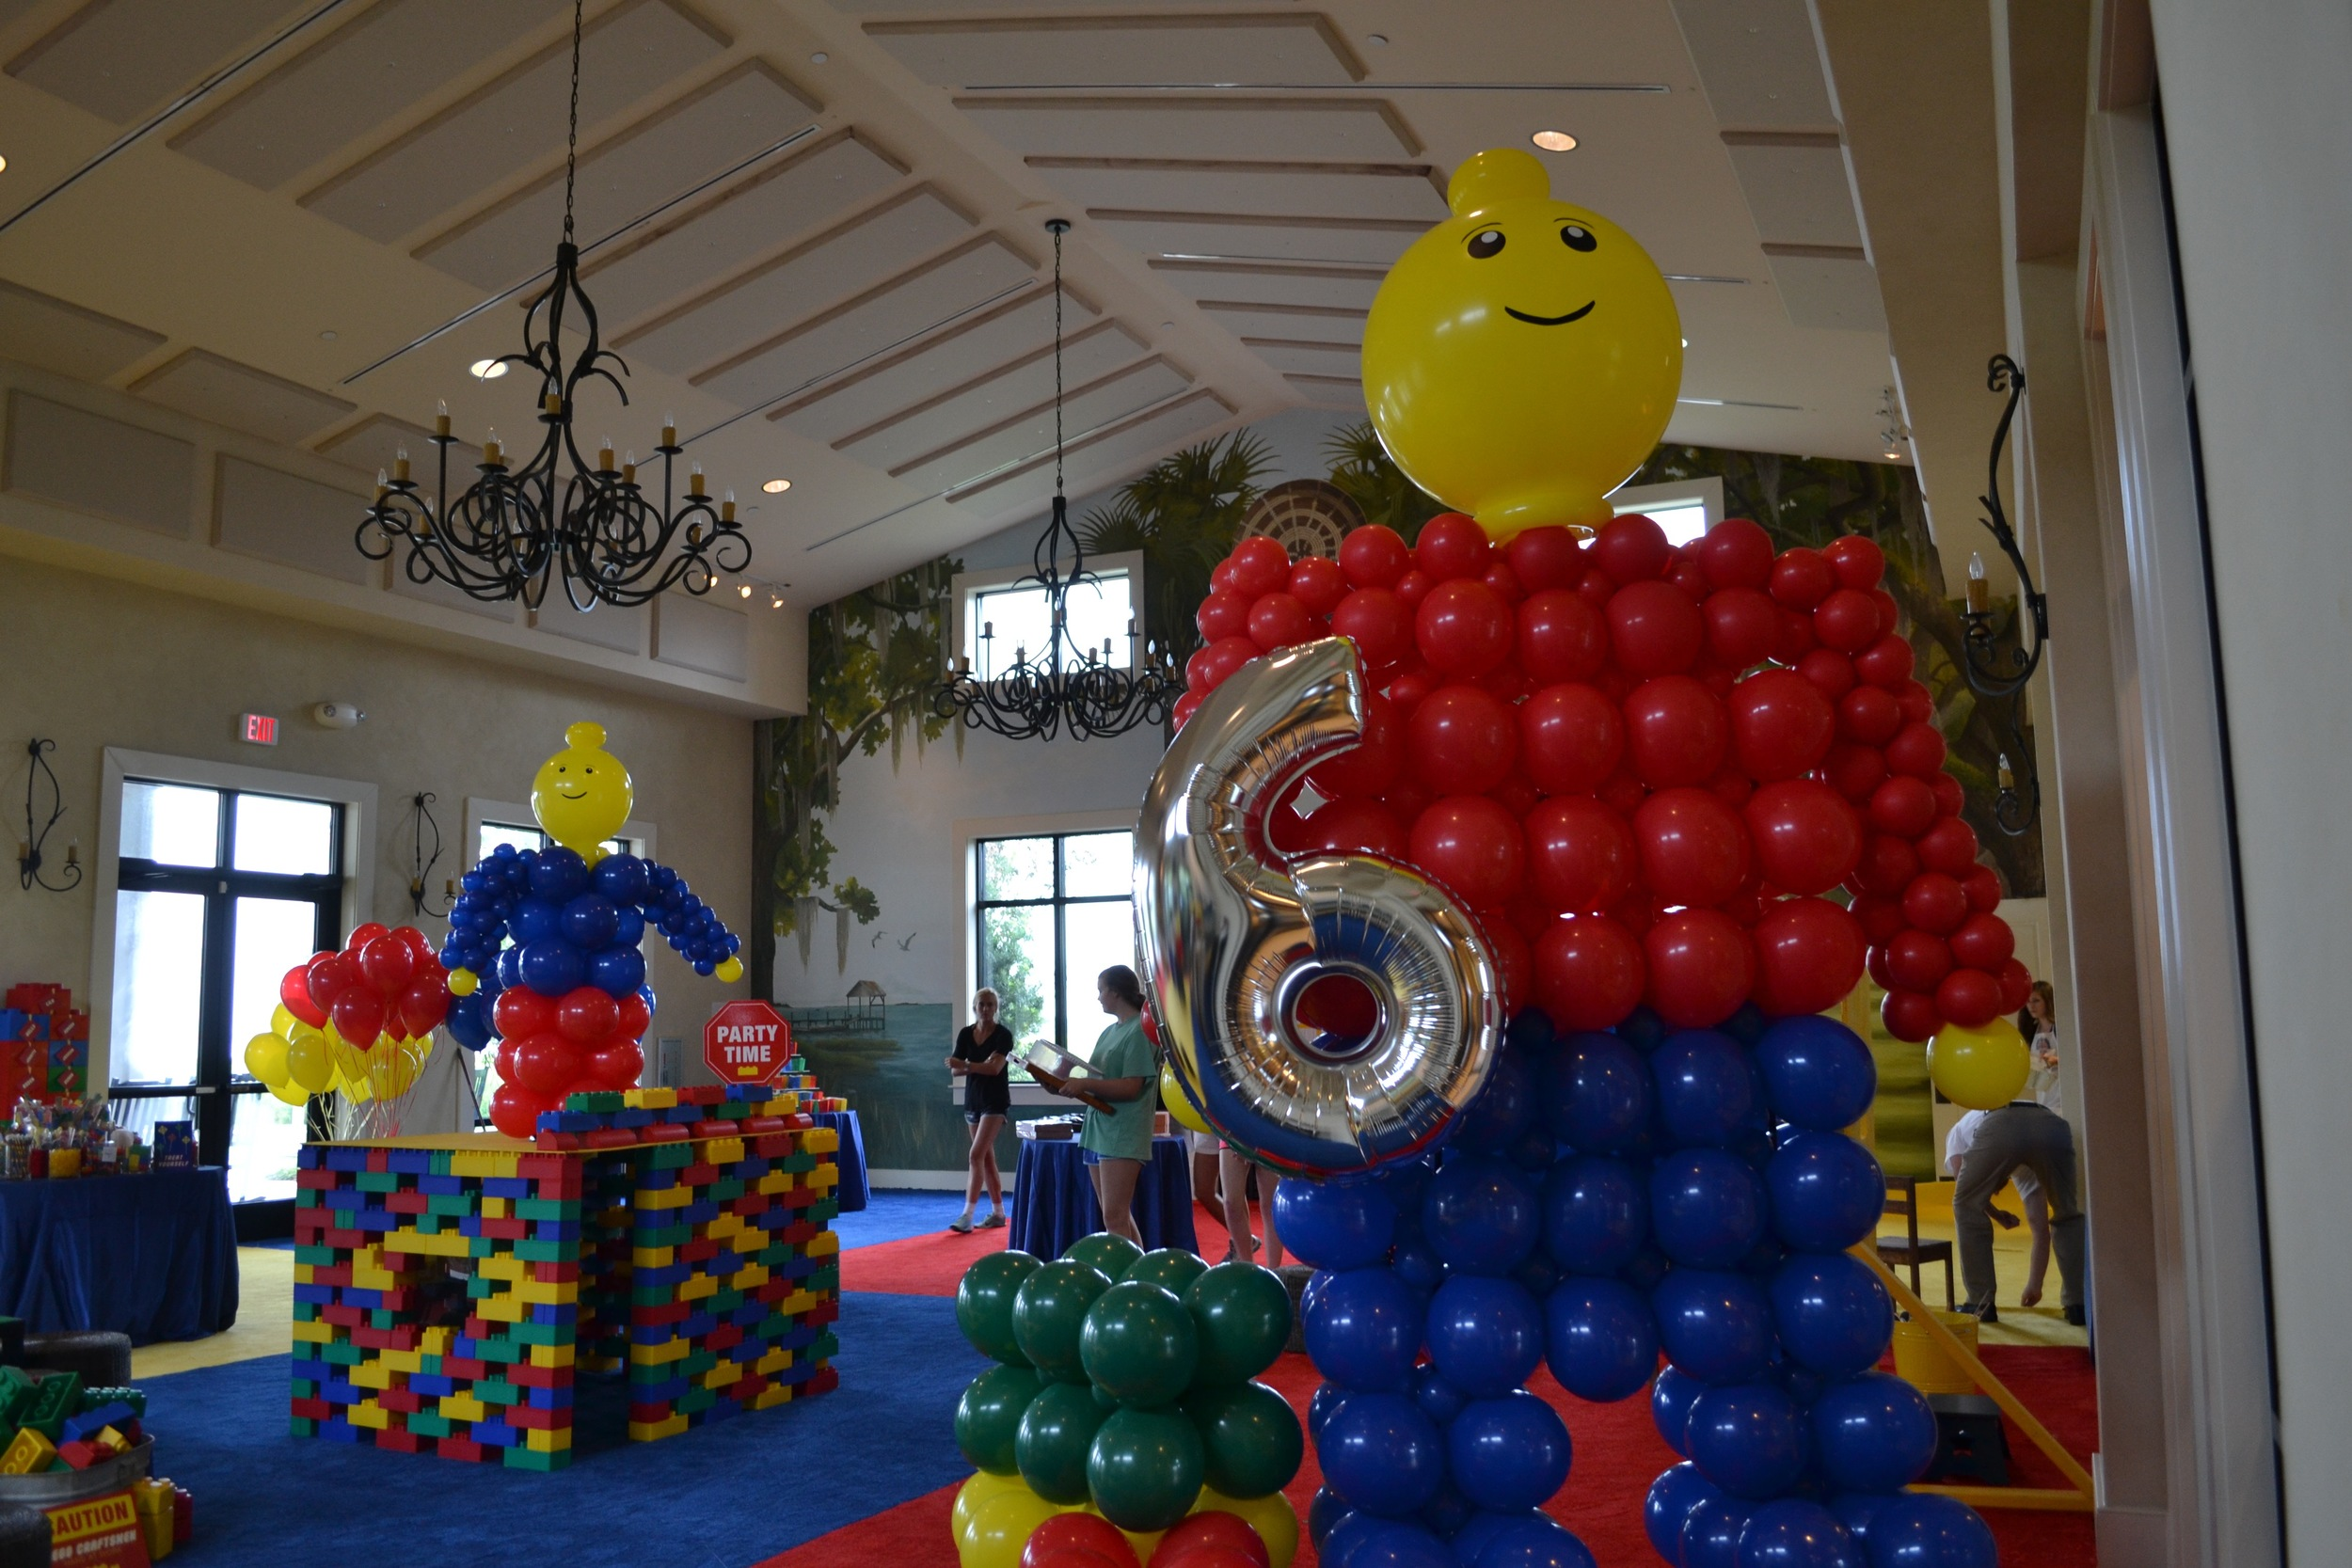 Let balloons great your guests upon arrival!